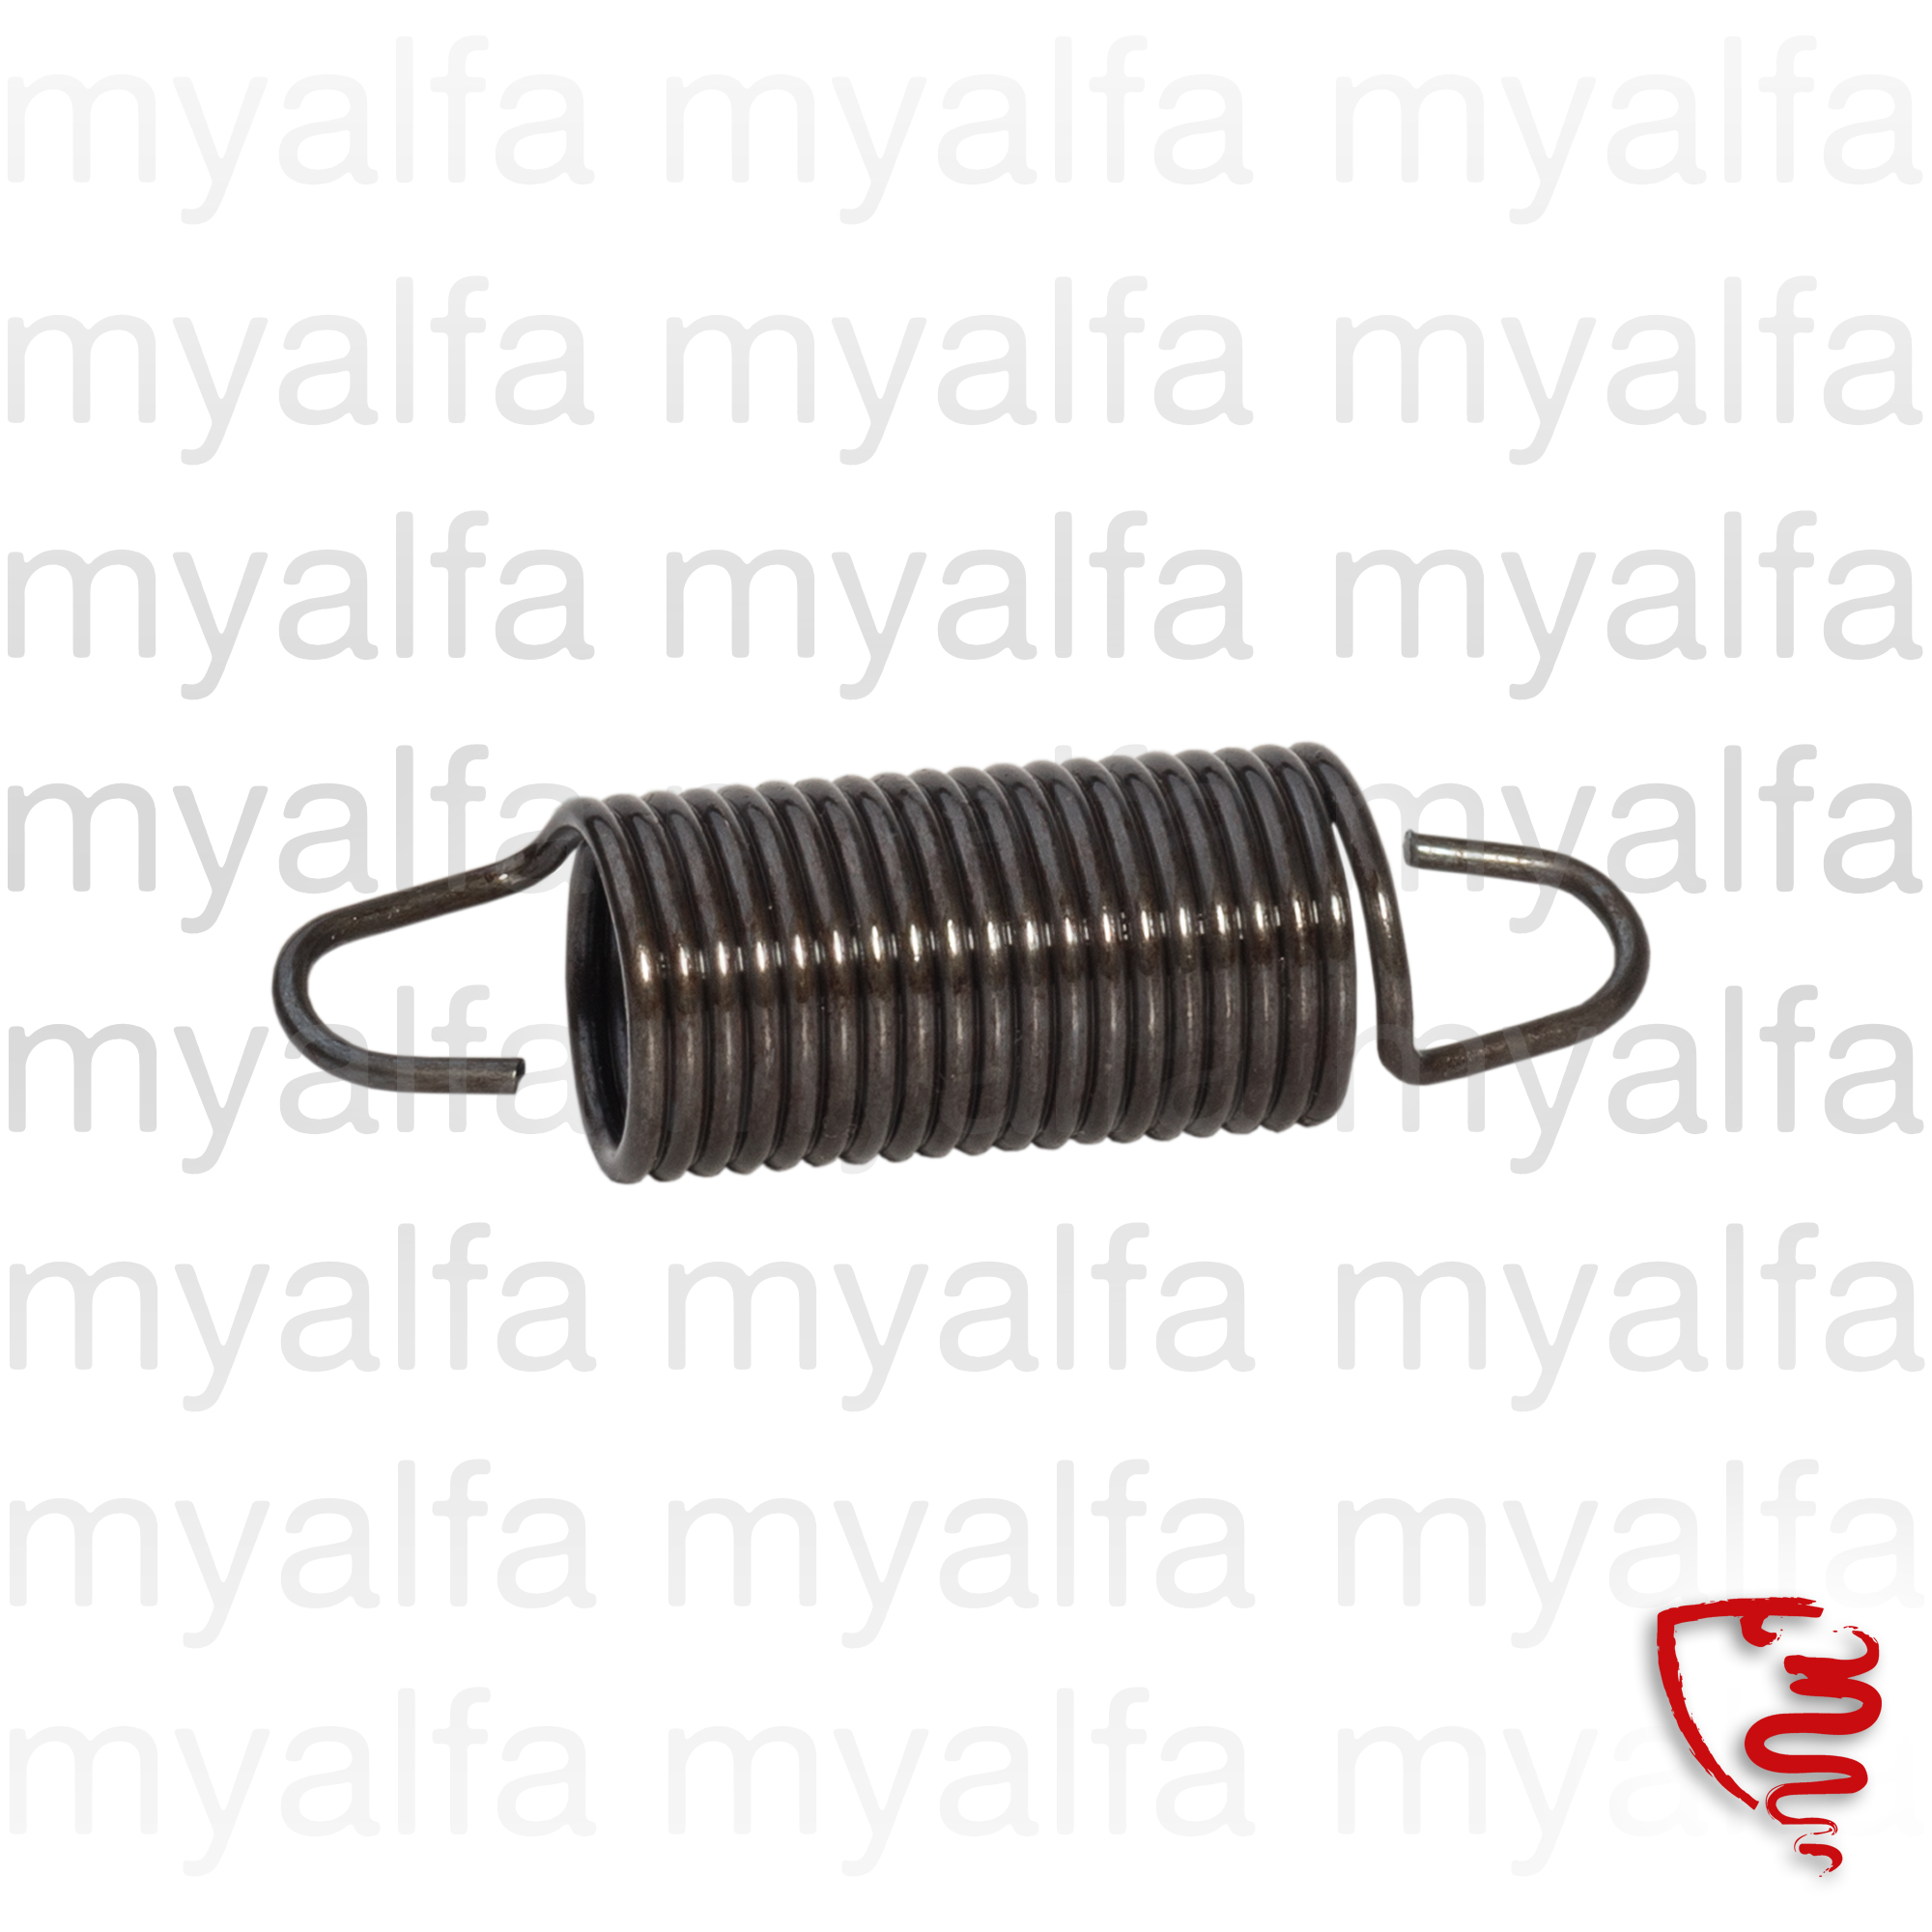 Return spring for accelerator pedal for 105/115, Pedals